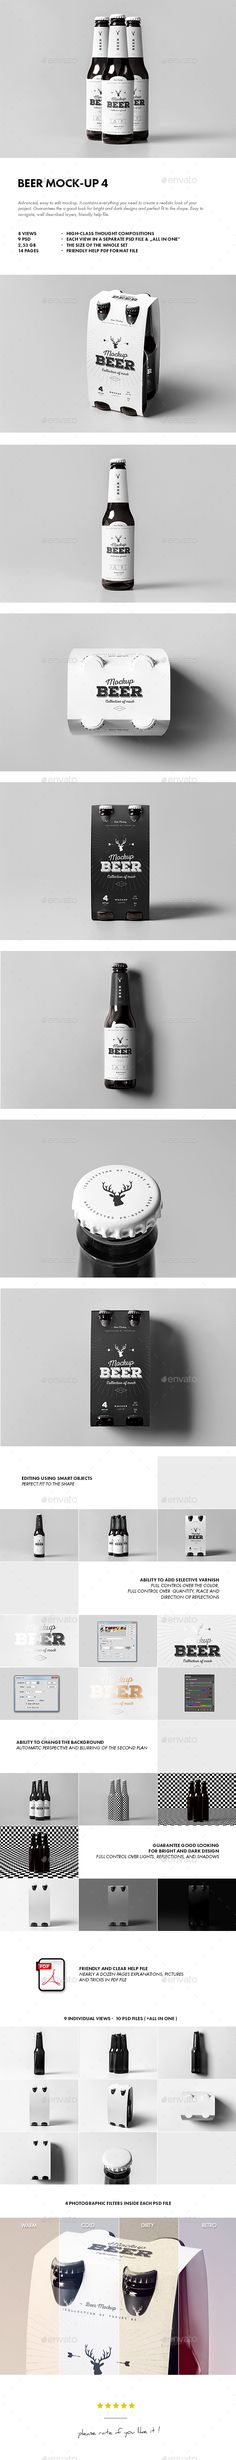 Beer Mockup 4 — Photoshop PSD #beer #minimalist • Available here → https://graphicriver.net/item/beer-mockup-4/15954190?ref=pxcr